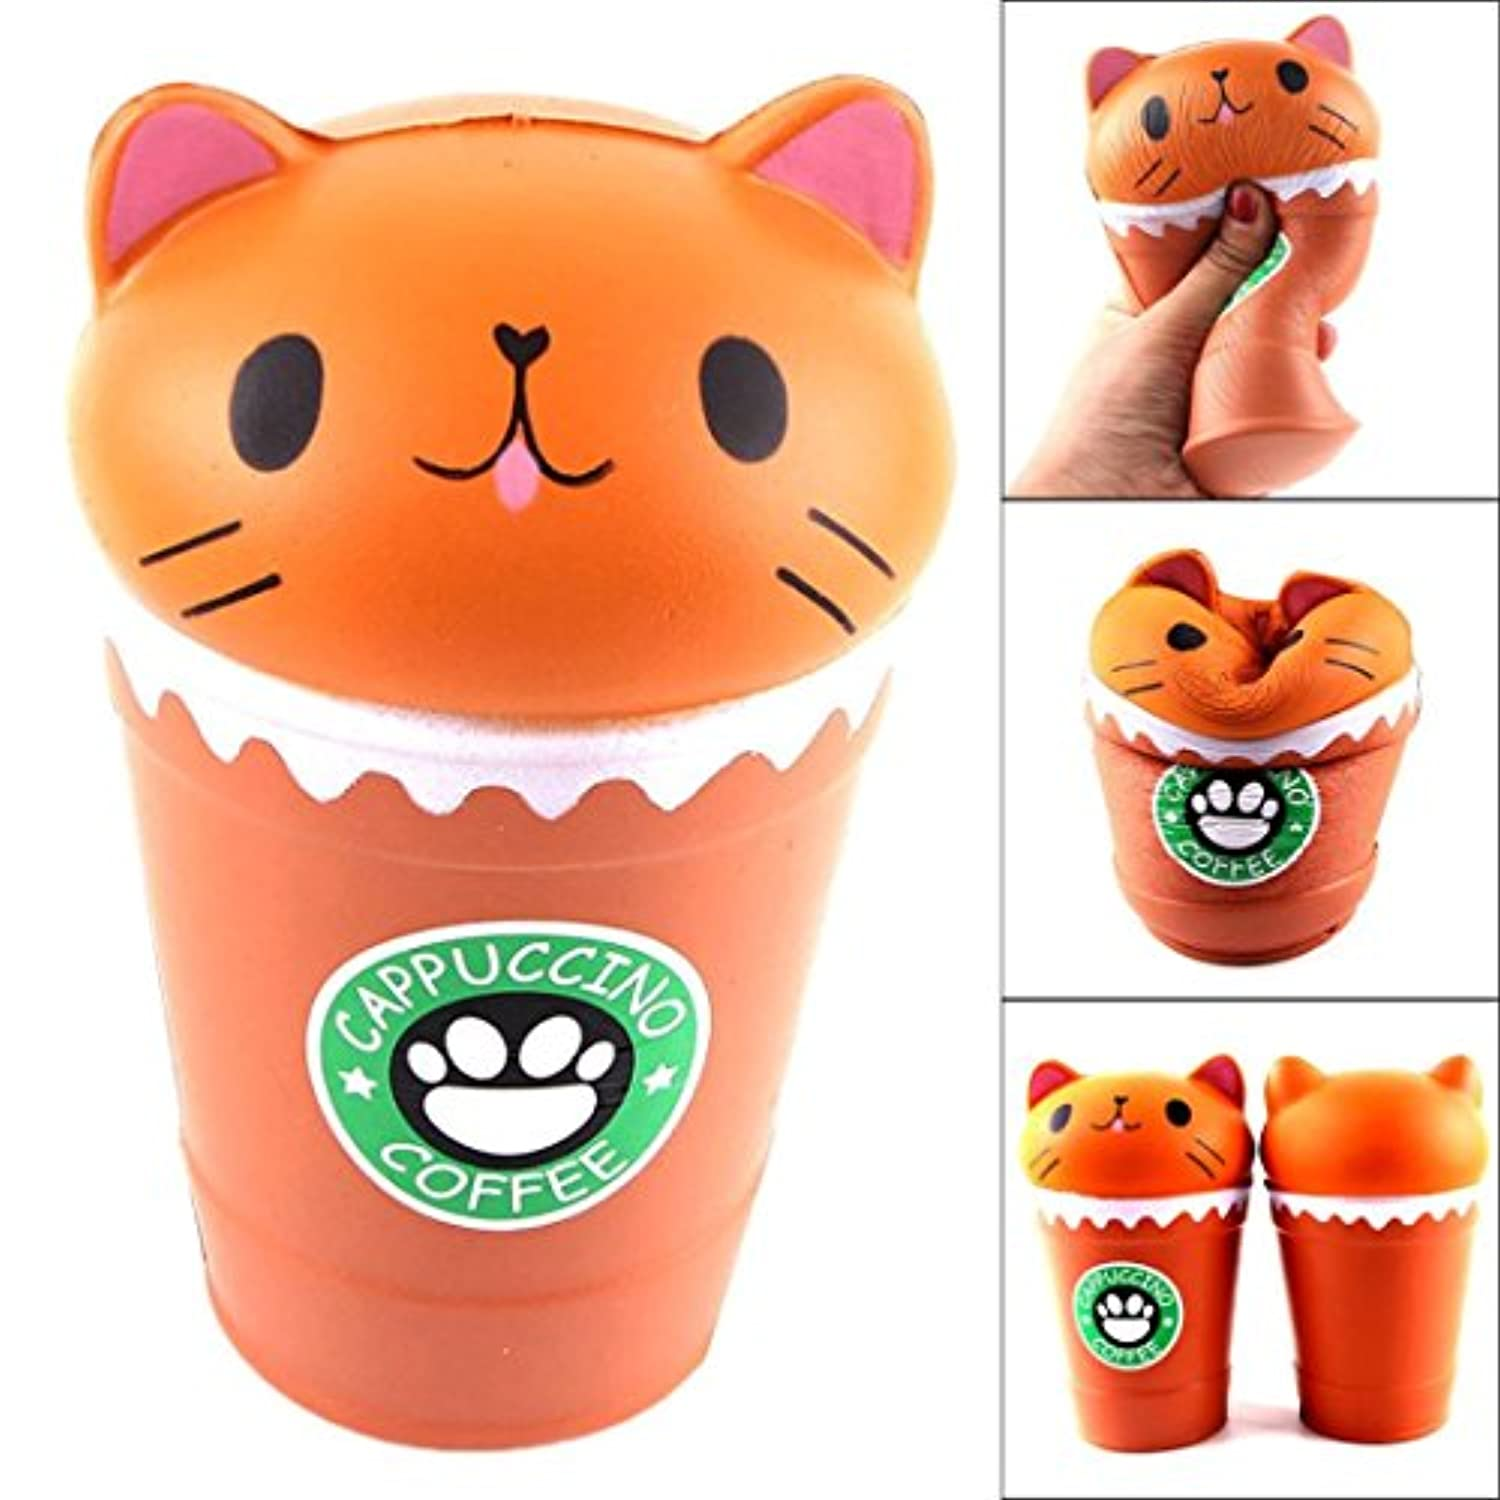 cinhentジャンボSlow RisingカットカプチーノコーヒーカップCat Fun to Squeeze Squishy Toys2colorsホット選択 14*8*8cm オレンジ CHINA-0122